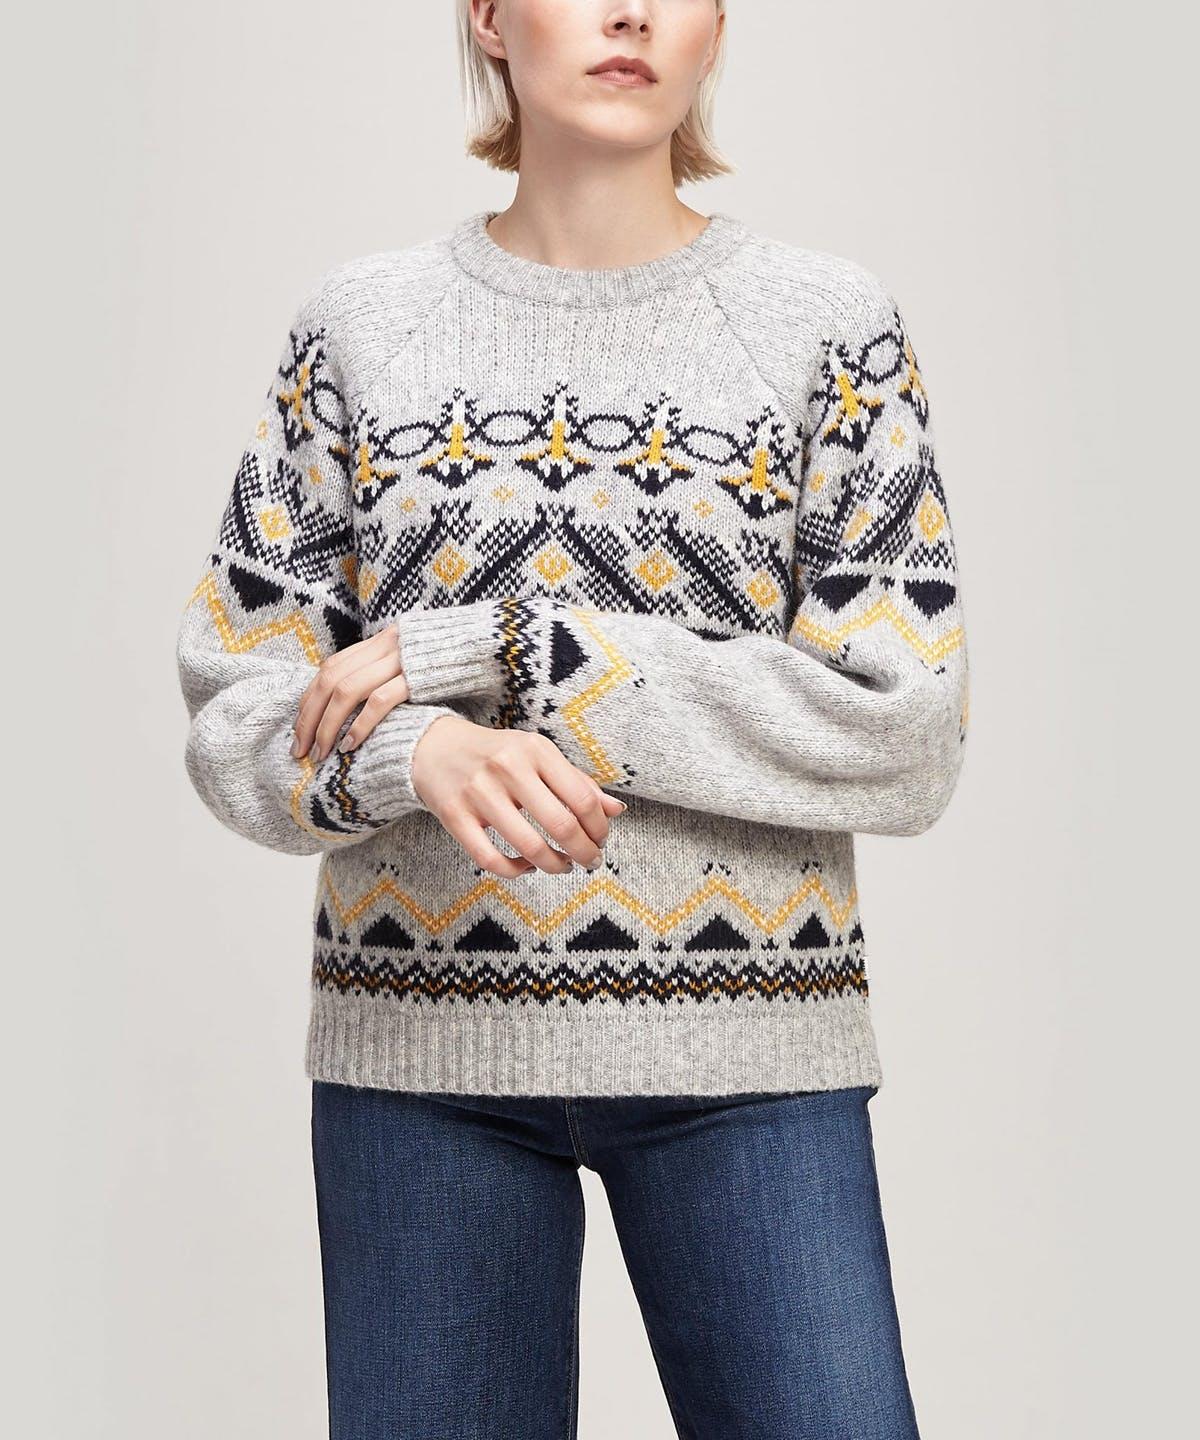 Best Christmas Jumper Day sweaters for 2019